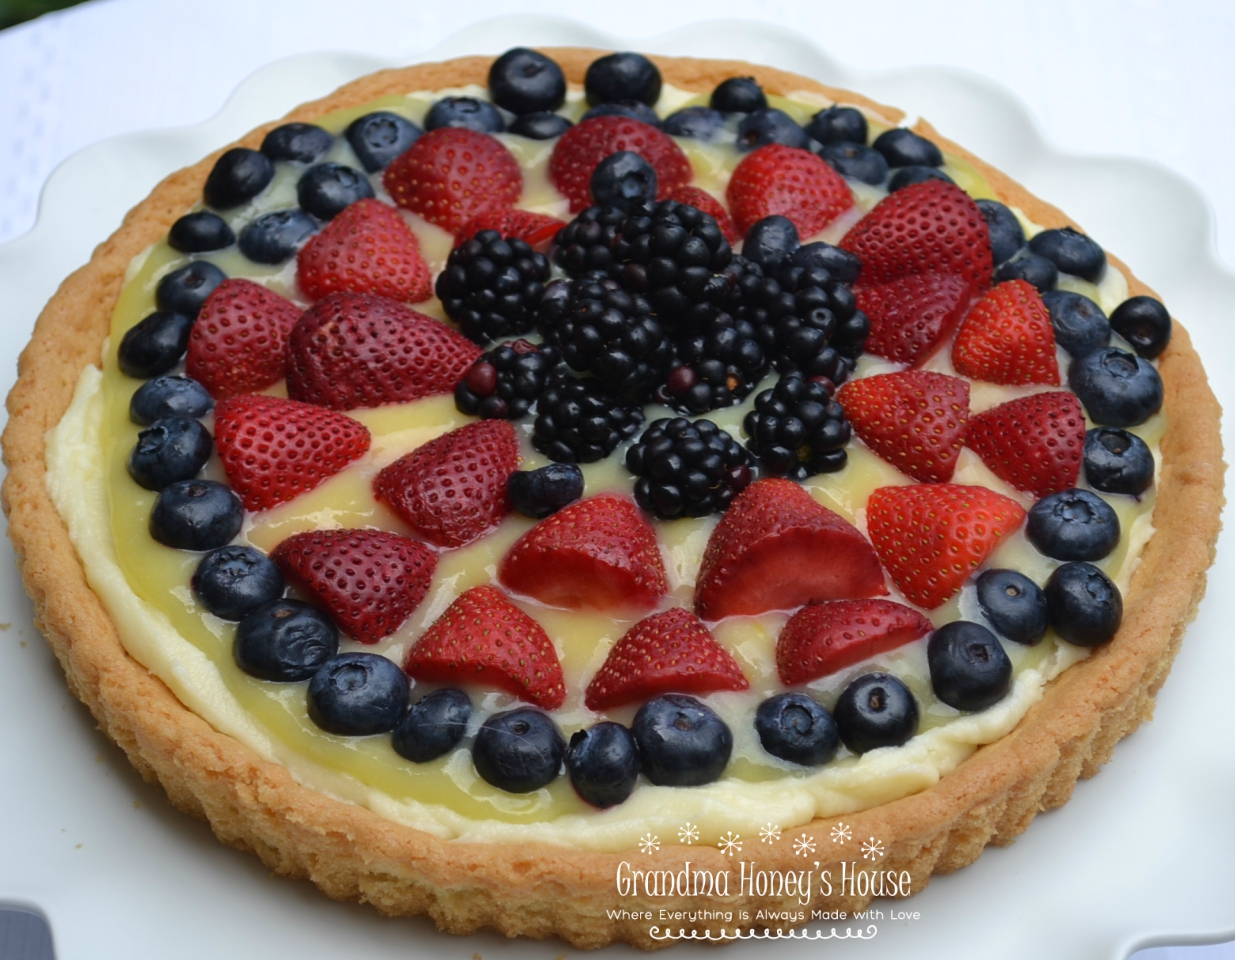 Berry Lemon Mascarpone Cookie Tart is made with a sugar cookie crust that is filled with sweetened mascarpone cheese, lemon curd, and topped with fresh berries.